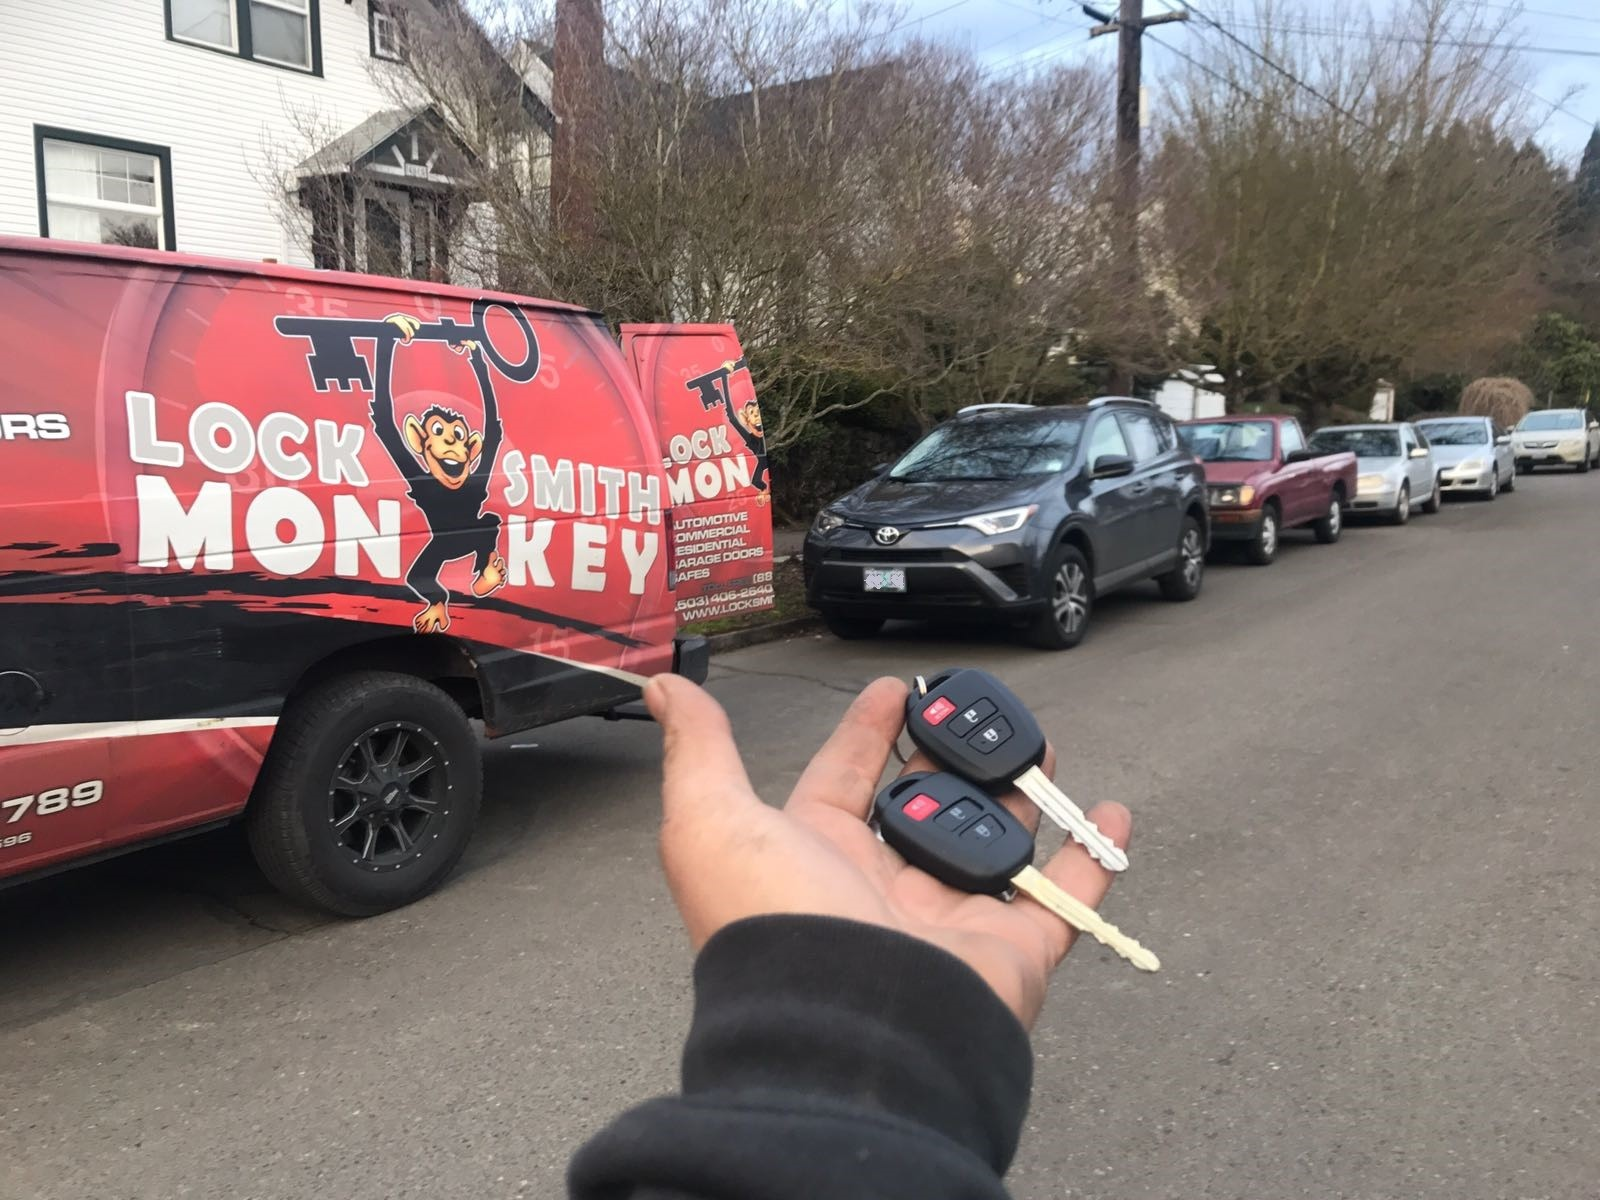 2016 Toyota Rav4 car key fob replacement made after lost - Auto Locksmith Portland